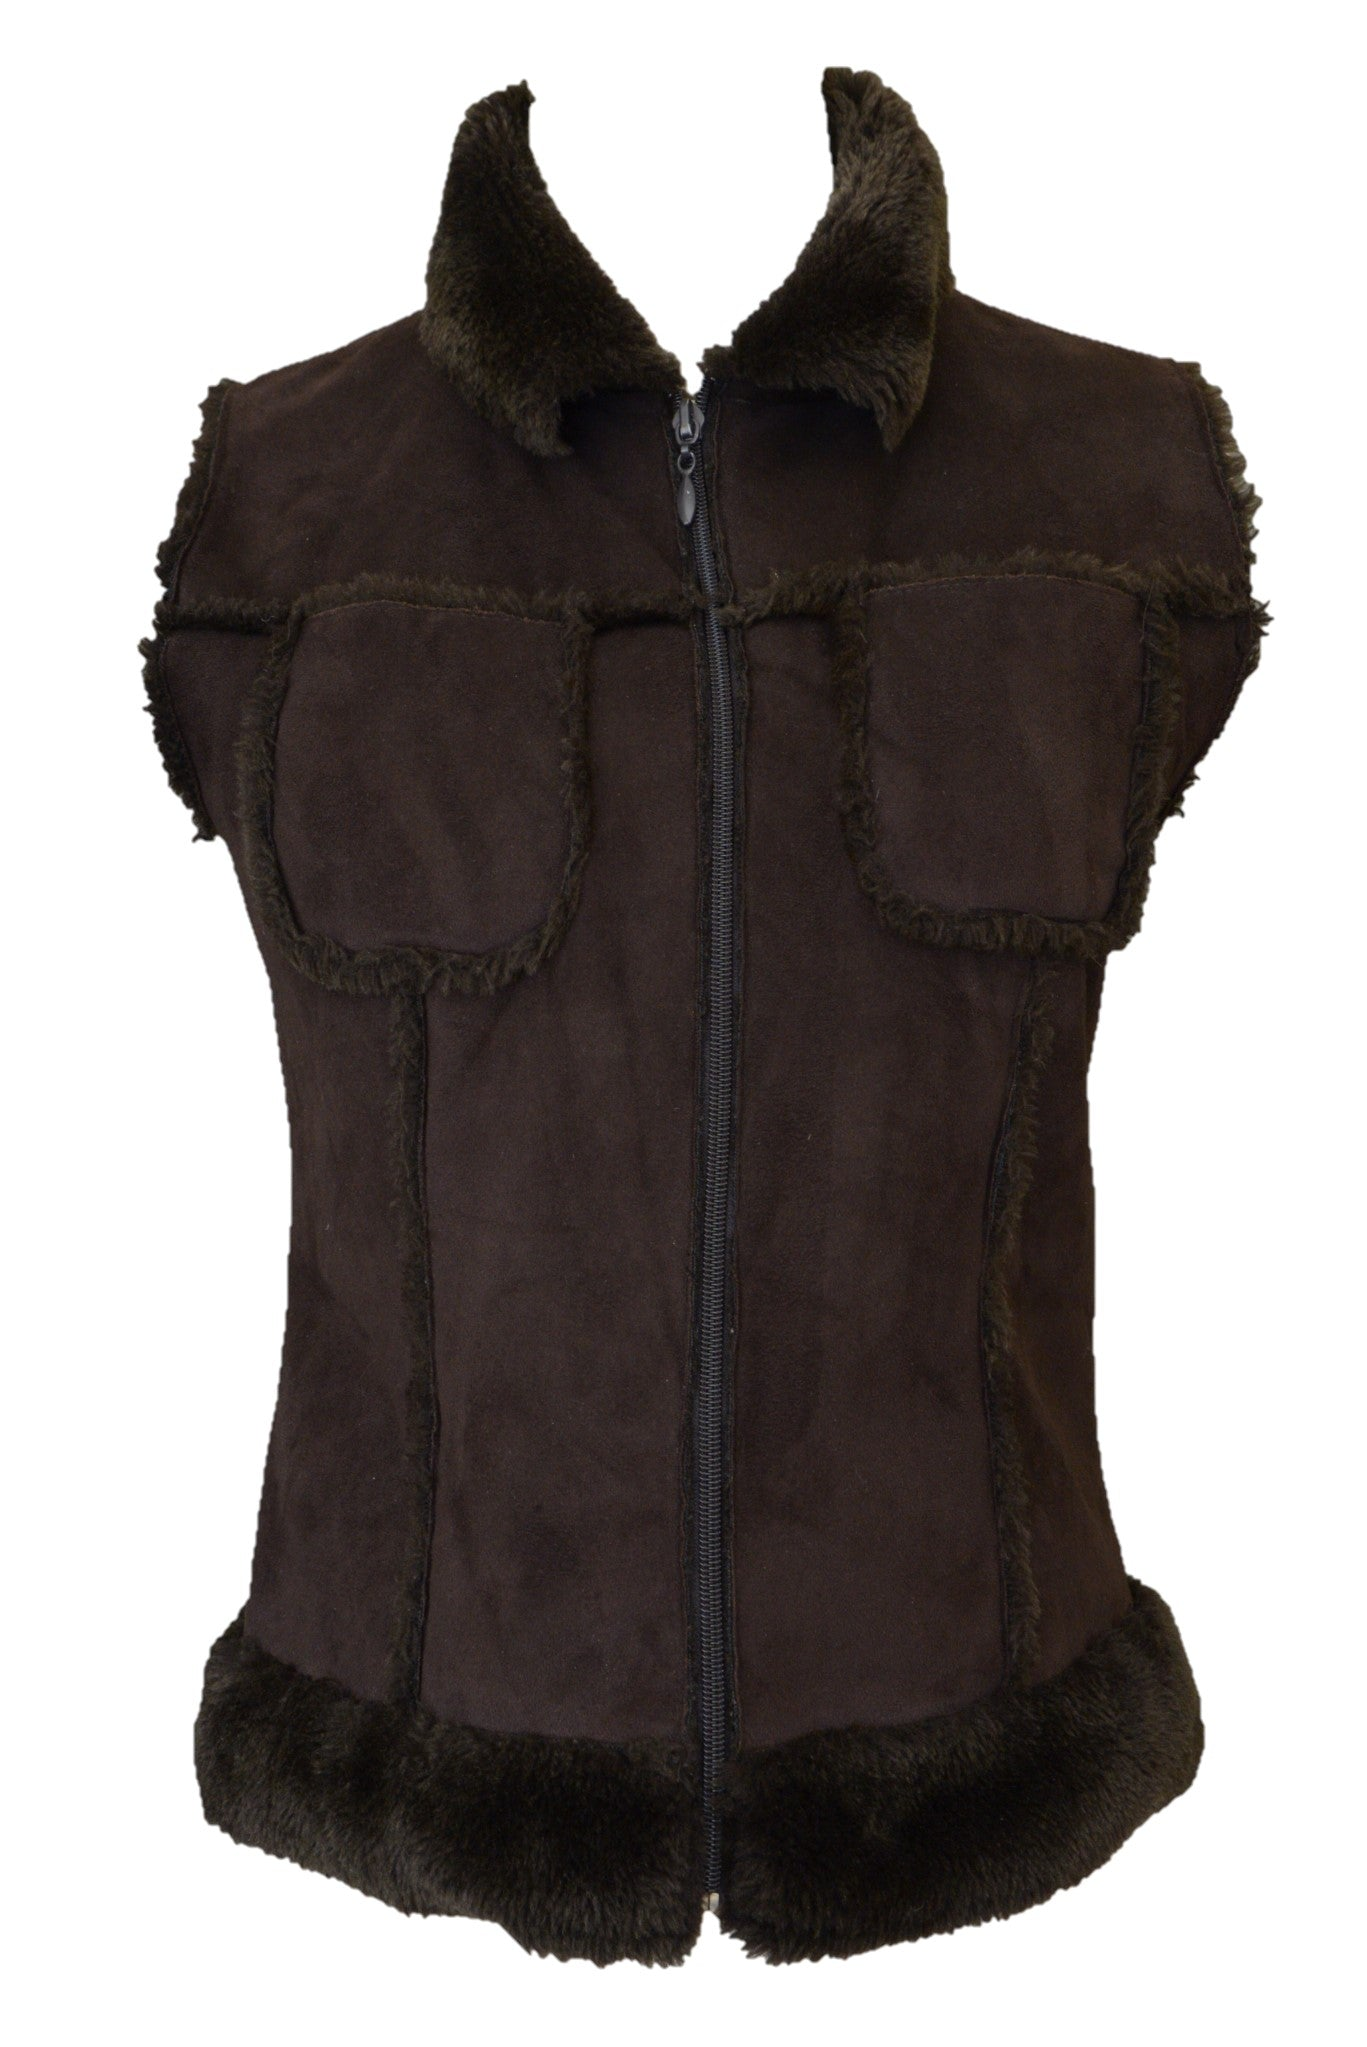 Pash women's brown faux sheepskin vest with zip